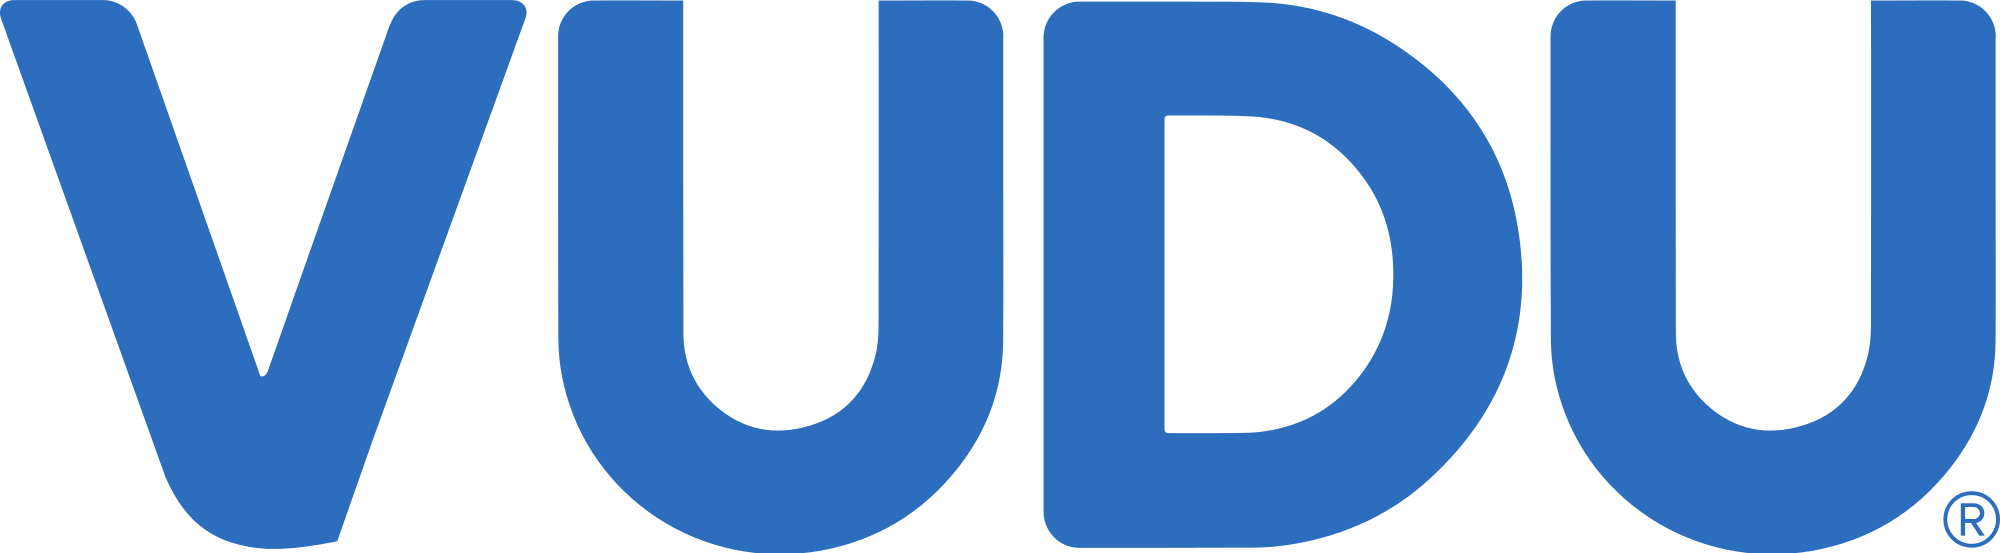 VUDU logo CAPTURED